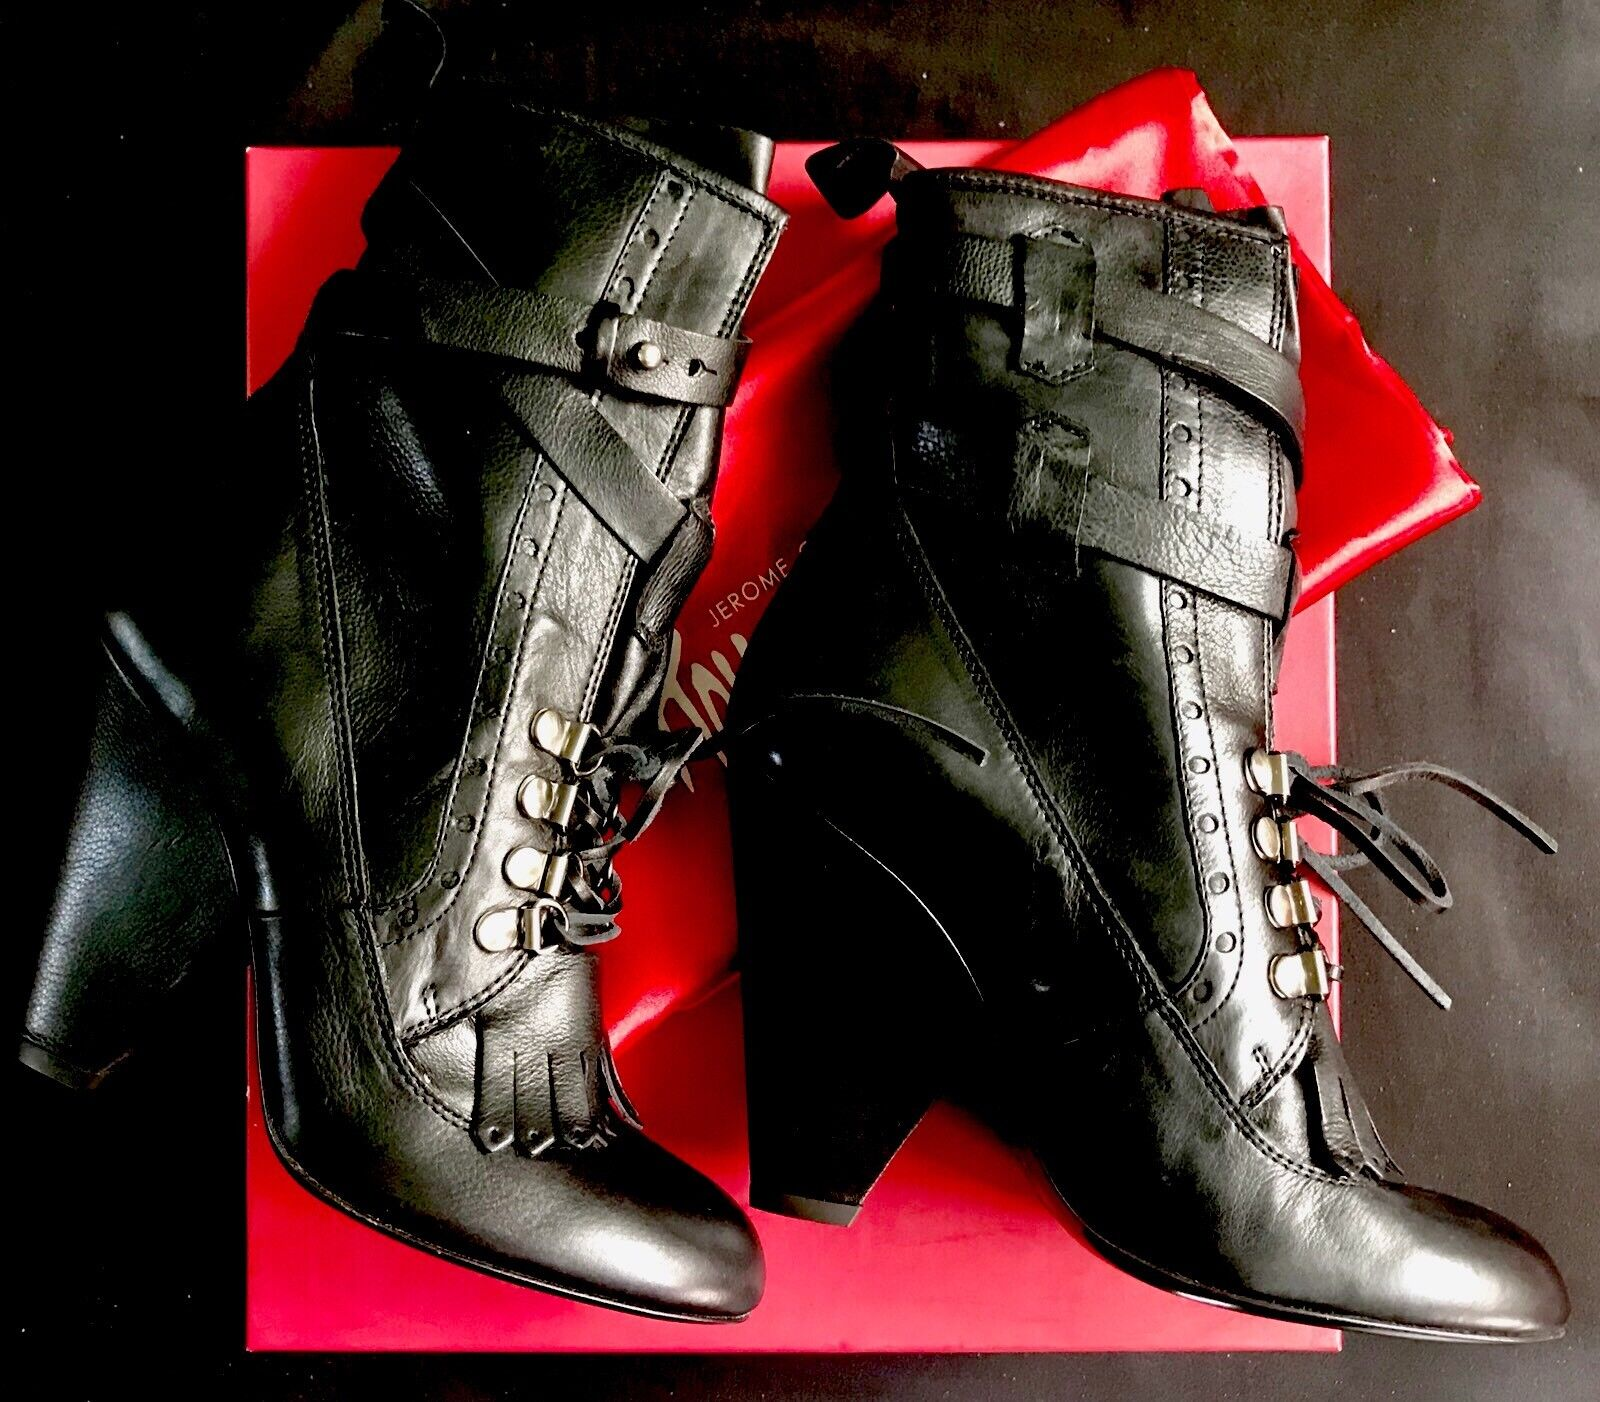 vendita outlet Jerome C. Rousseau ITALY ITALY ITALY Artemis Lace-Up Ankle stivali  895 Retail - Dimensione 37  vendita scontata online di factory outlet